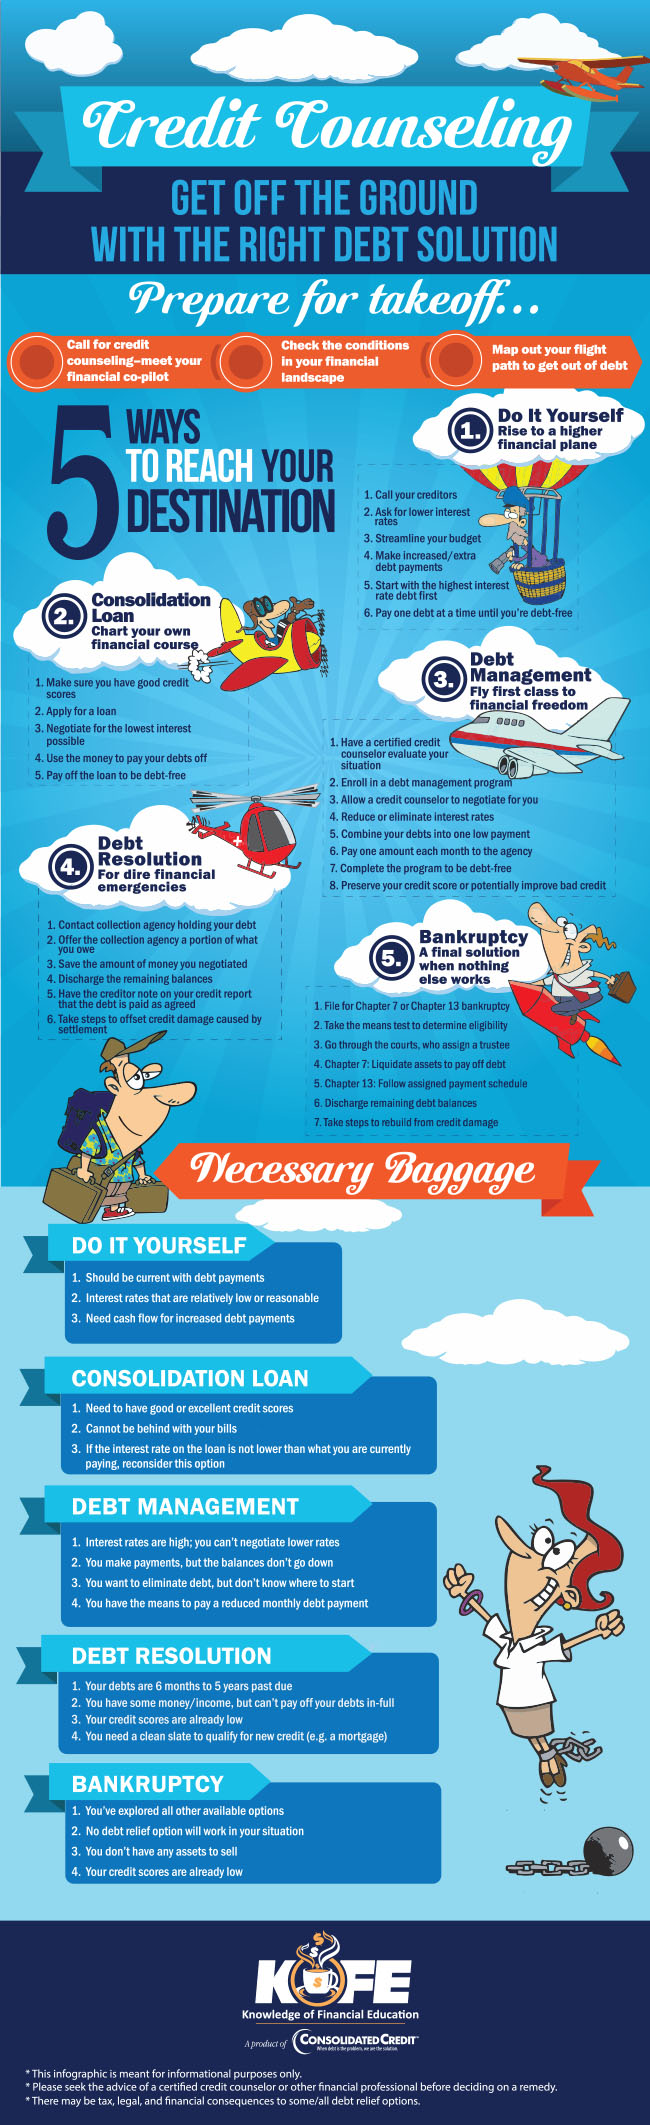 Get Off the Ground infographic